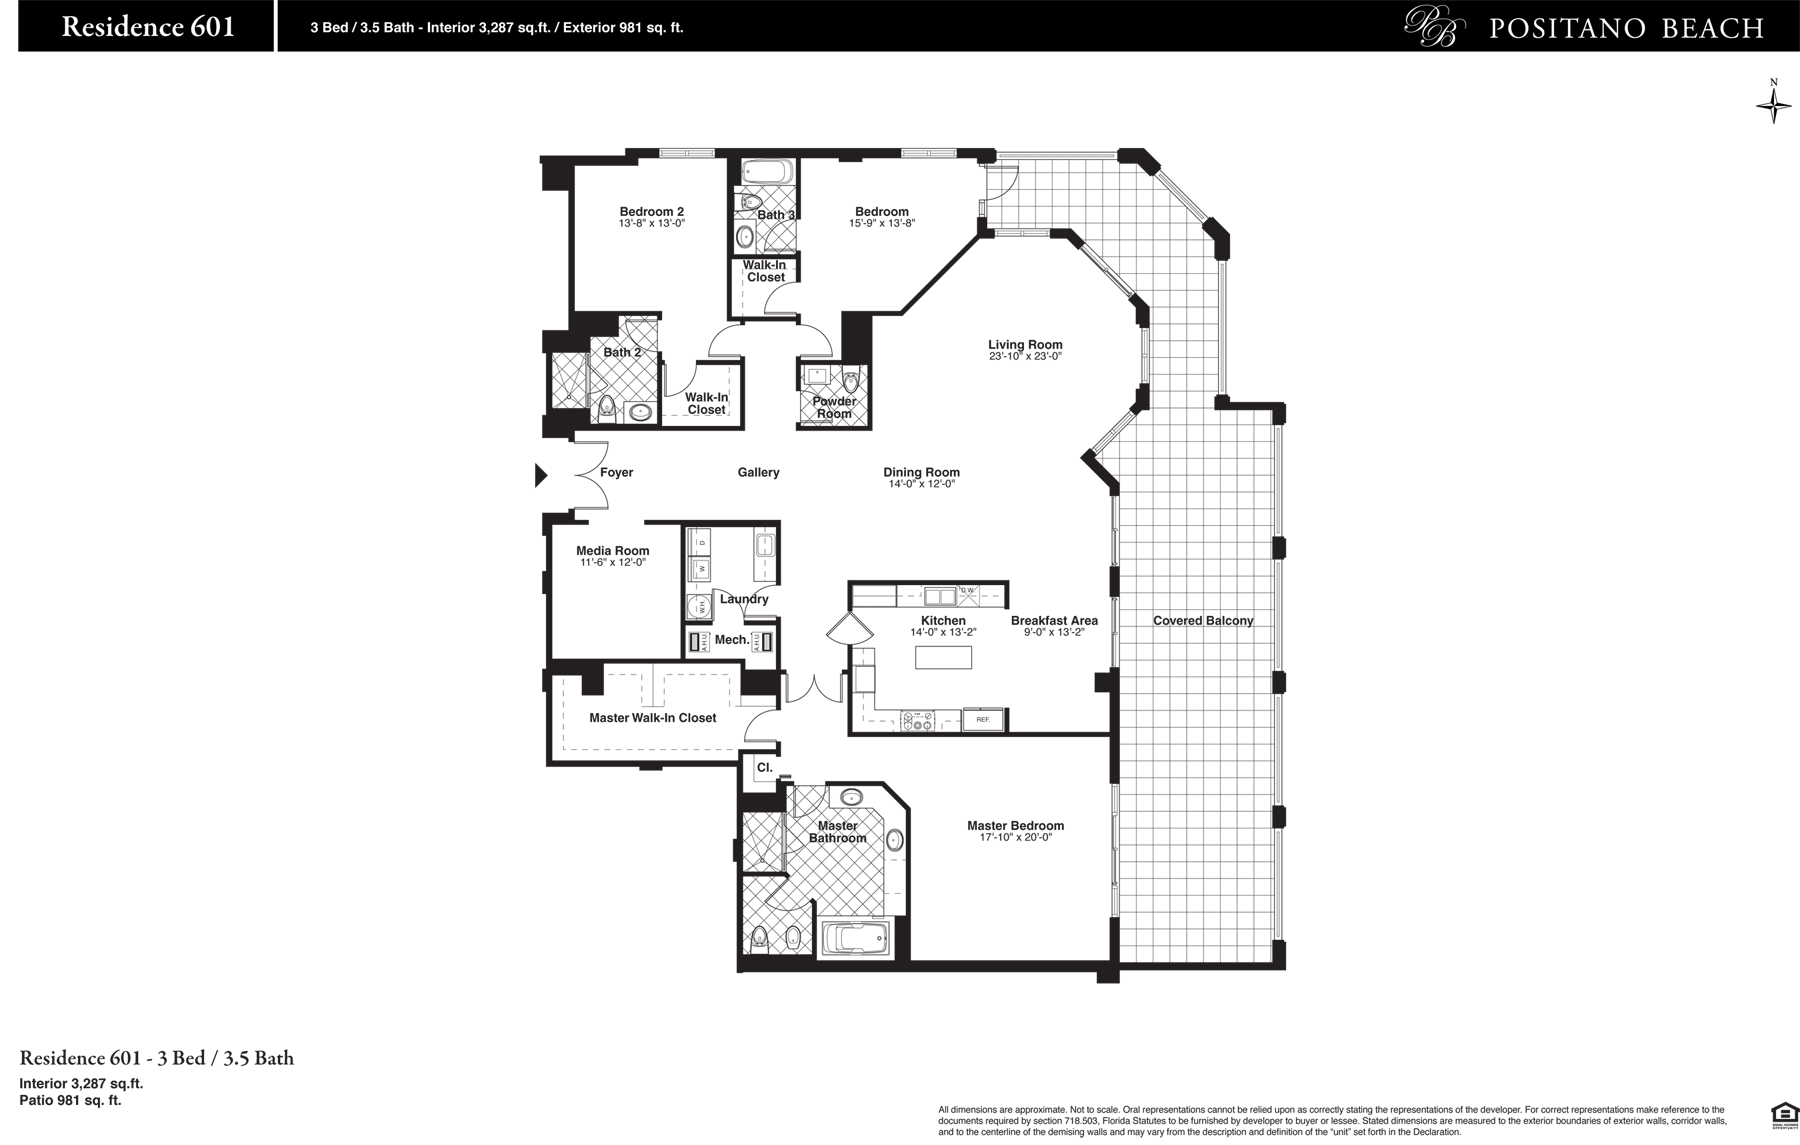 Positano Beach - Floorplan 9